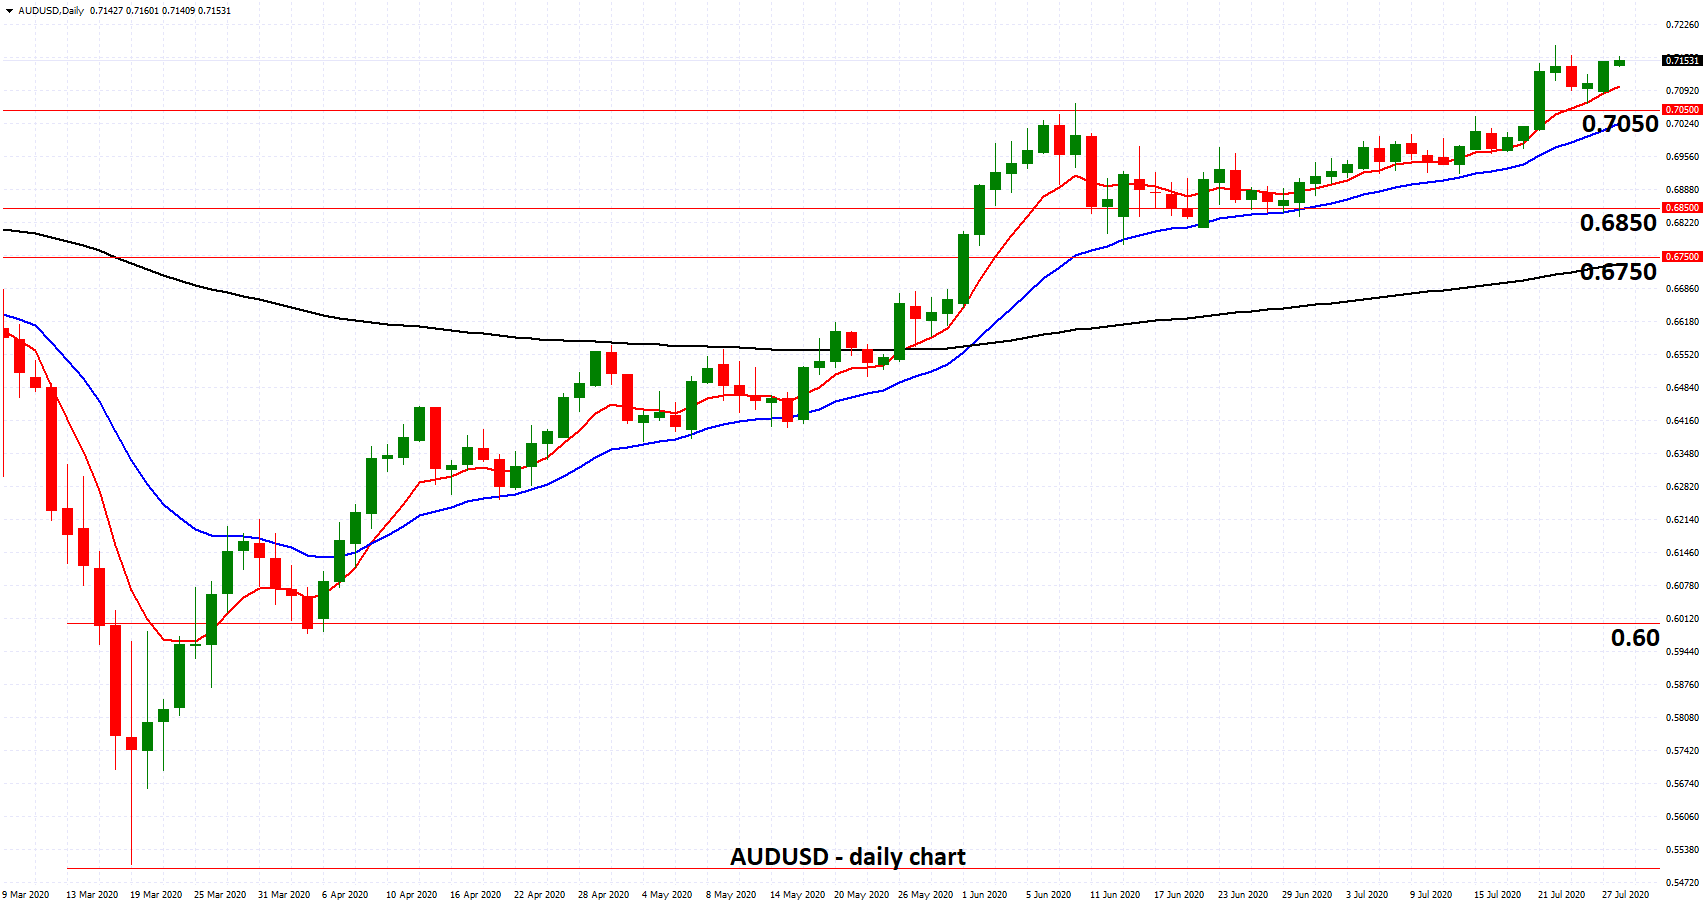 AUDUSD - Surges to 16 Month High above 0.7150 as RBA Says A is Fair Value